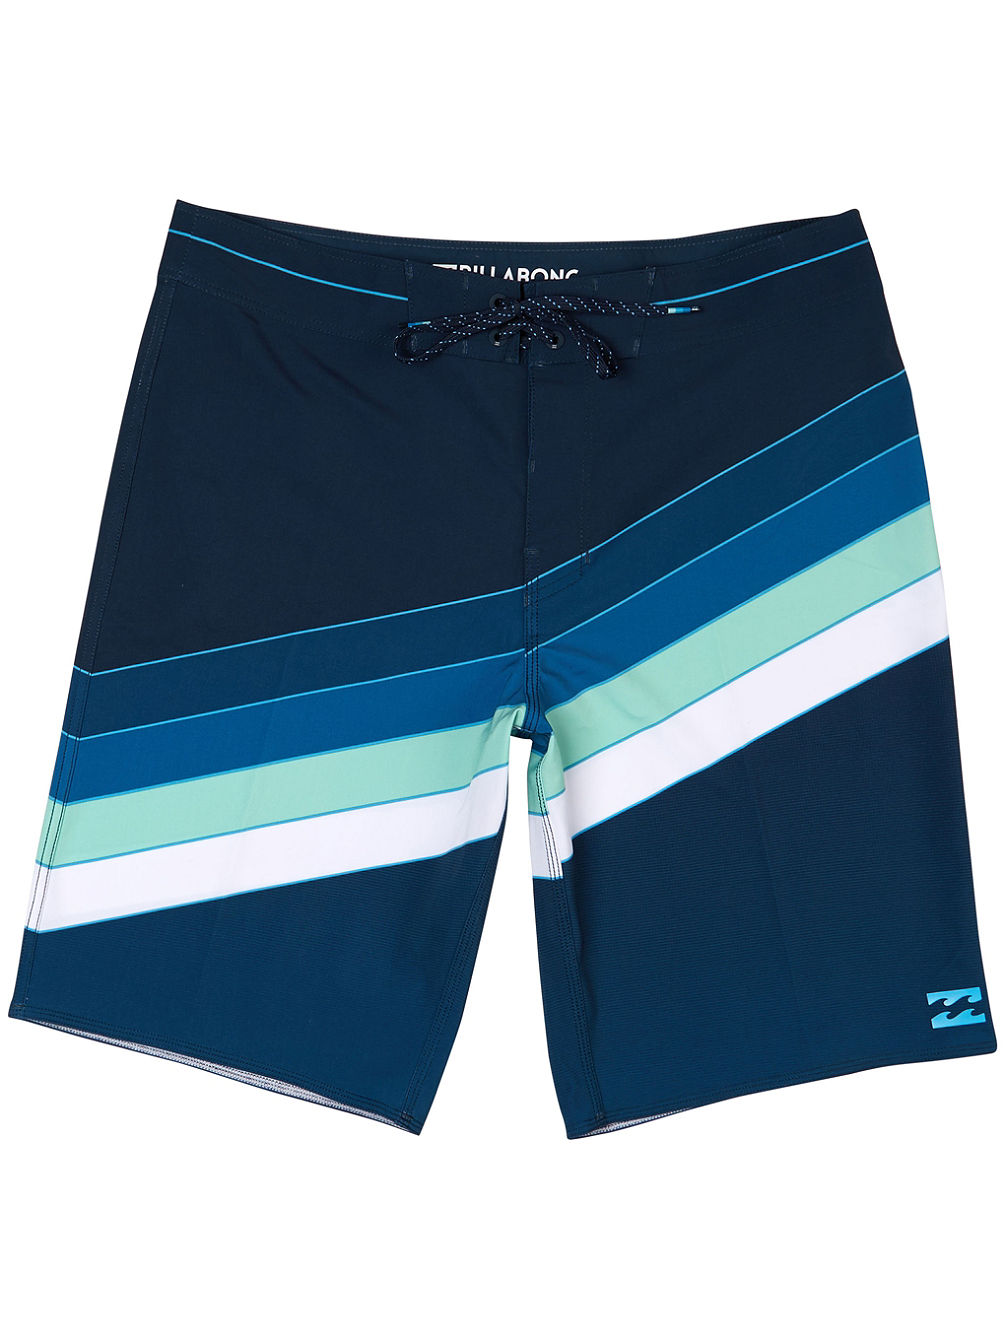 "North Point X 20"" Boardshorts"